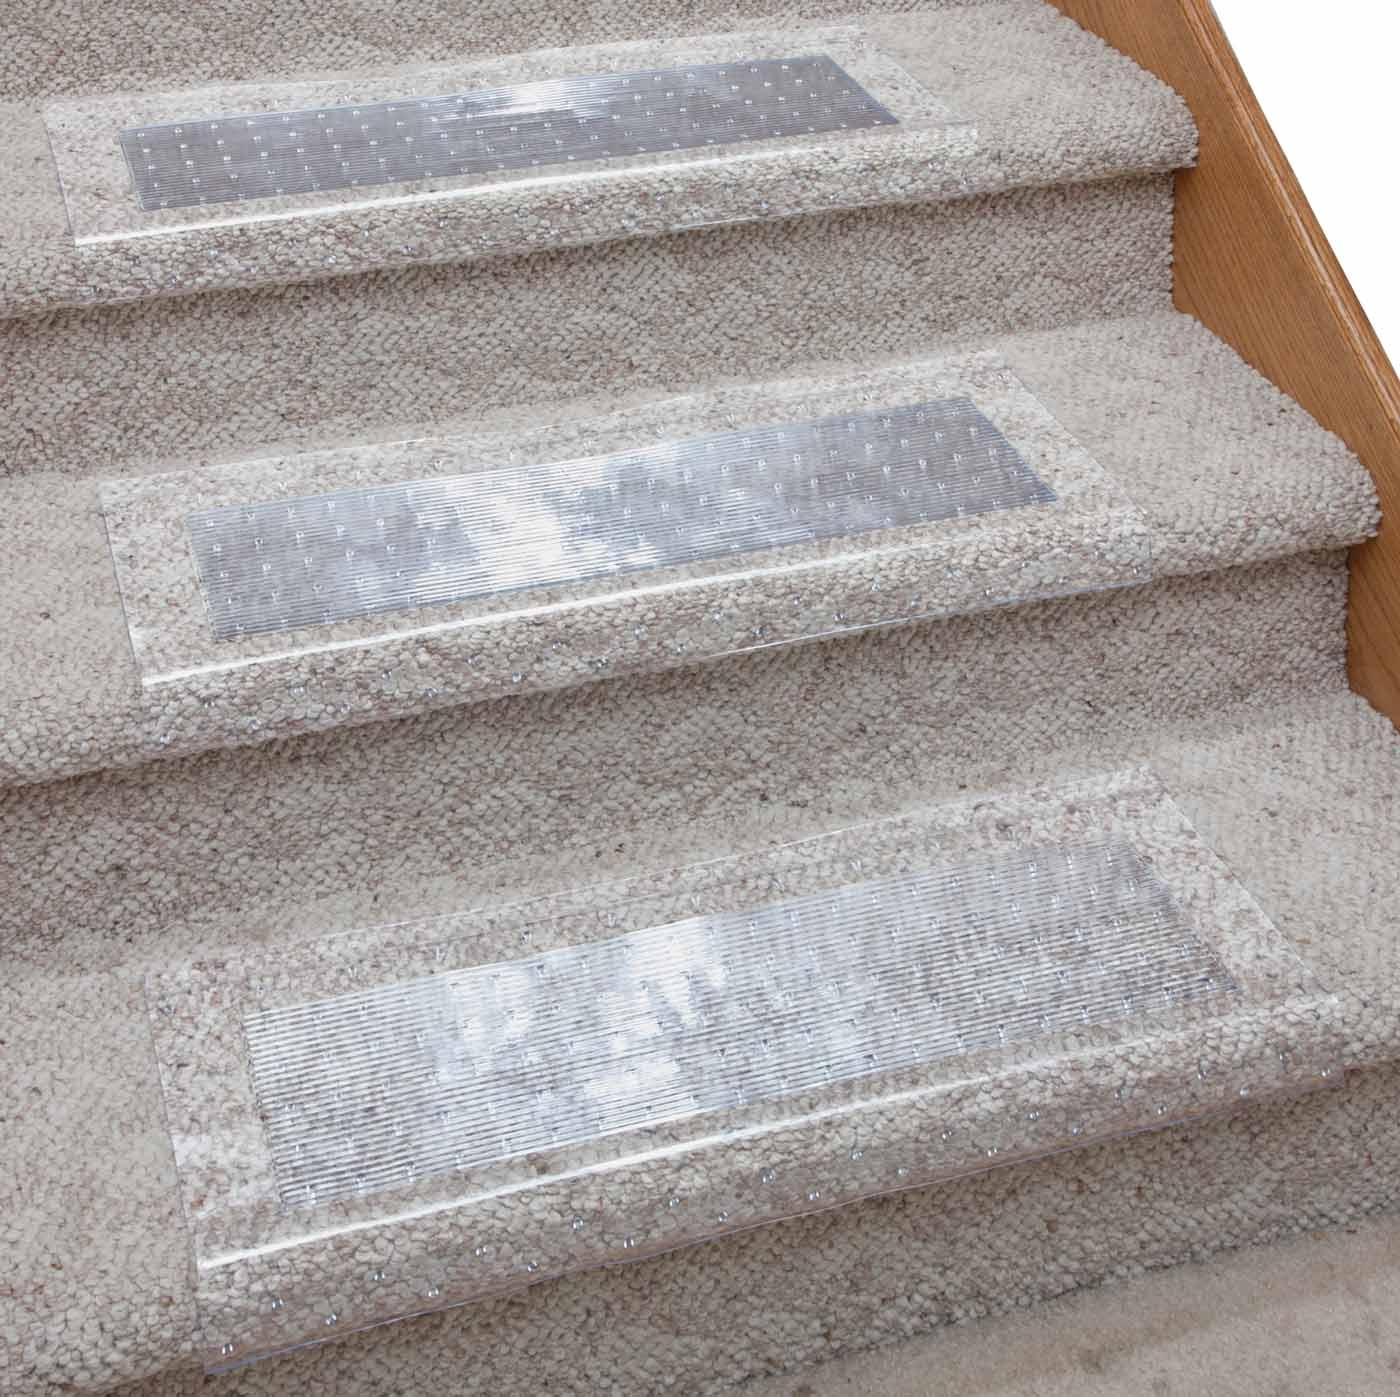 54 Stair Carpet Protectors Protector Carpets Inspirations Vinyl For Stair Tread Carpet Protectors (Image 1 of 15)